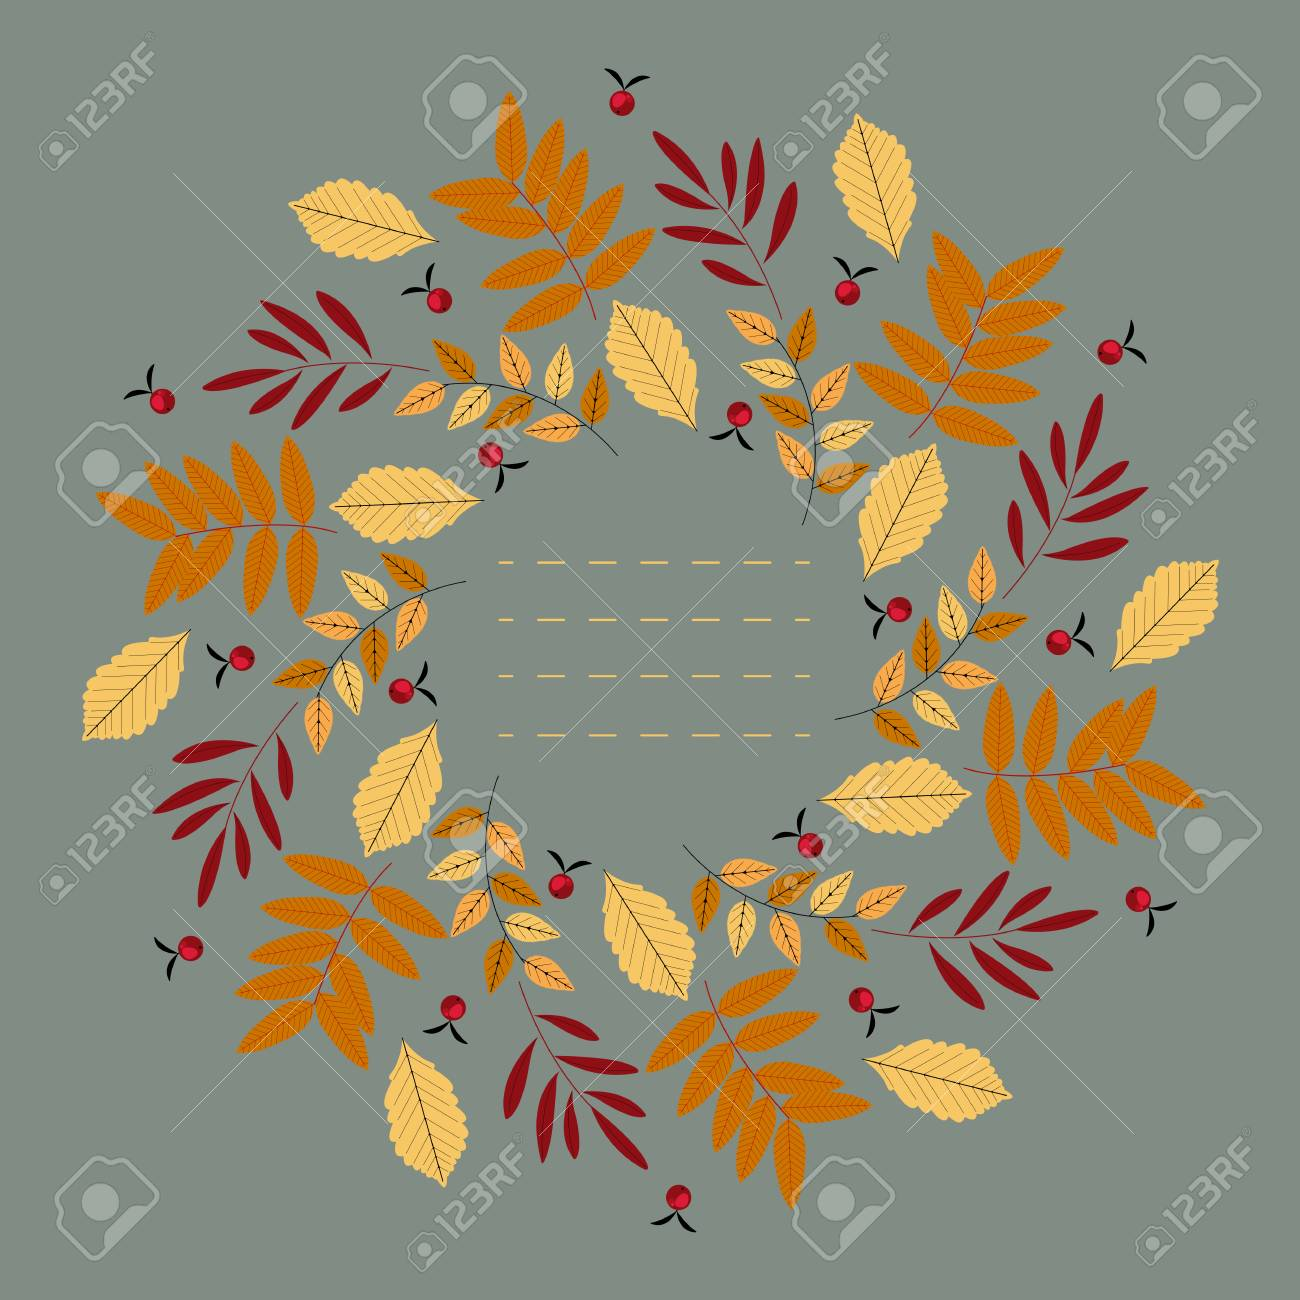 Stylish Round Frame With Decorative Autumn Leaves Can Be Used ...